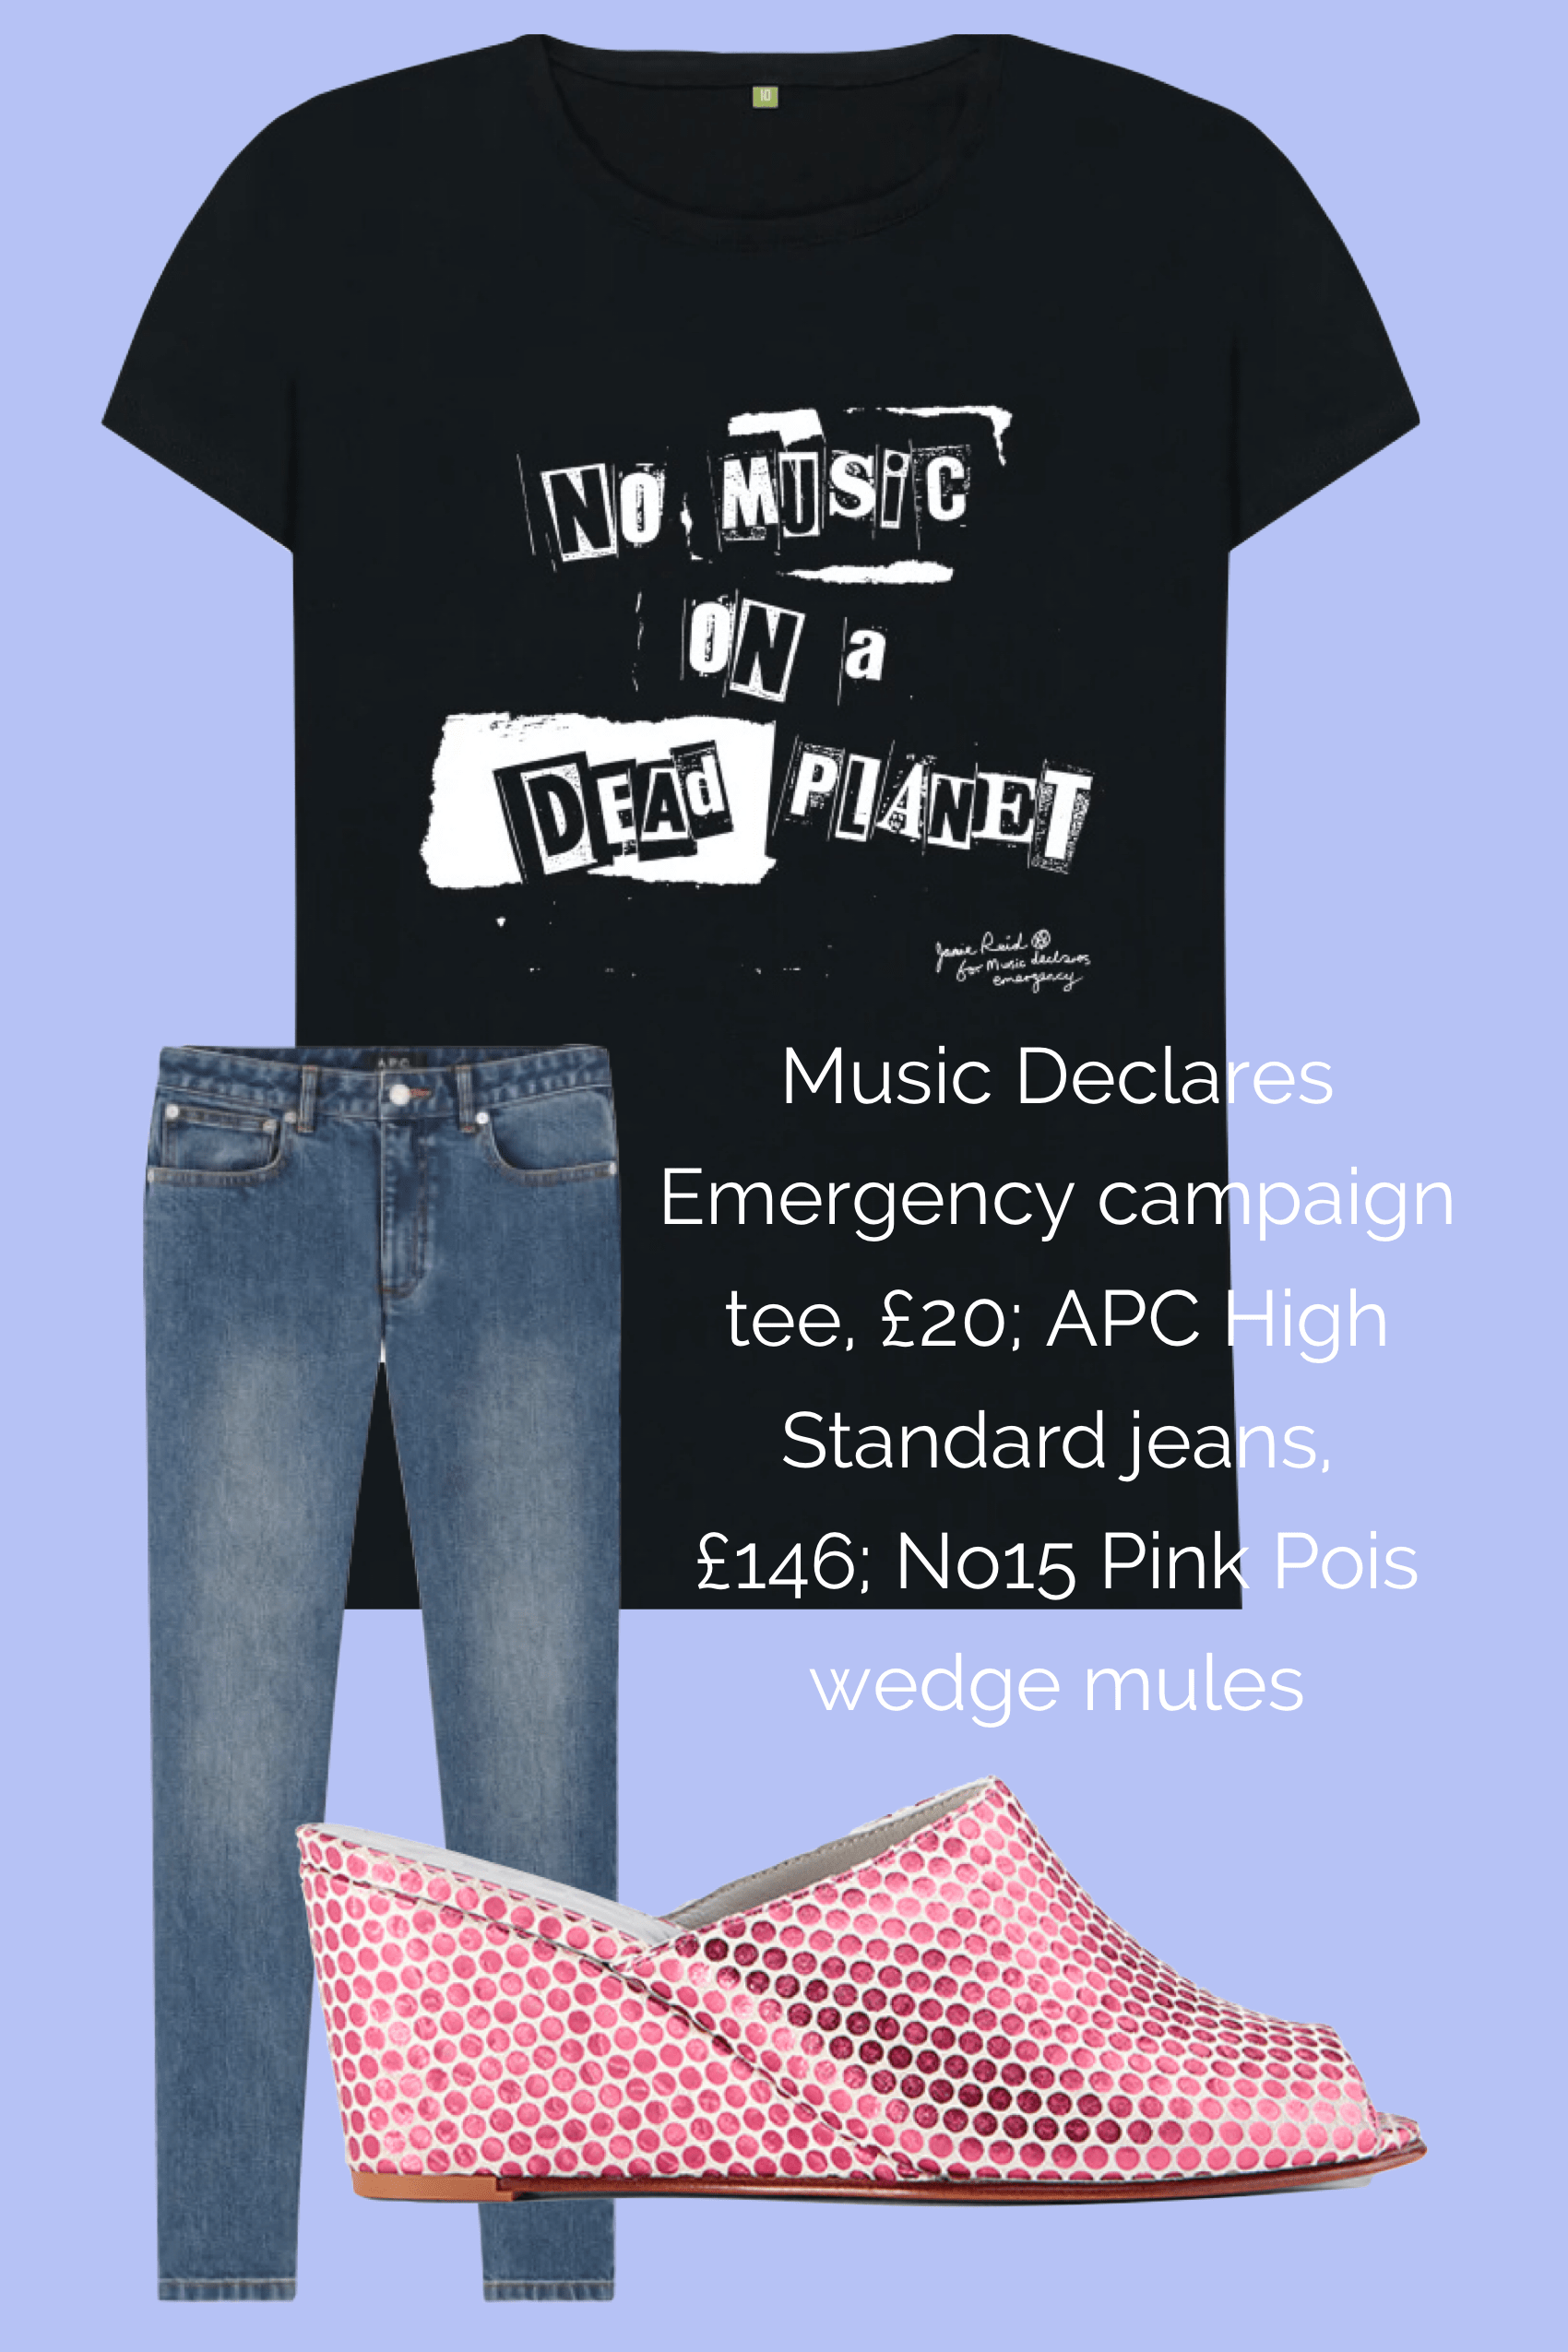 No15 Pink Pois wedges paired with APC HIgh Standard jeans and Music Declares Emergency campaign T-shirt